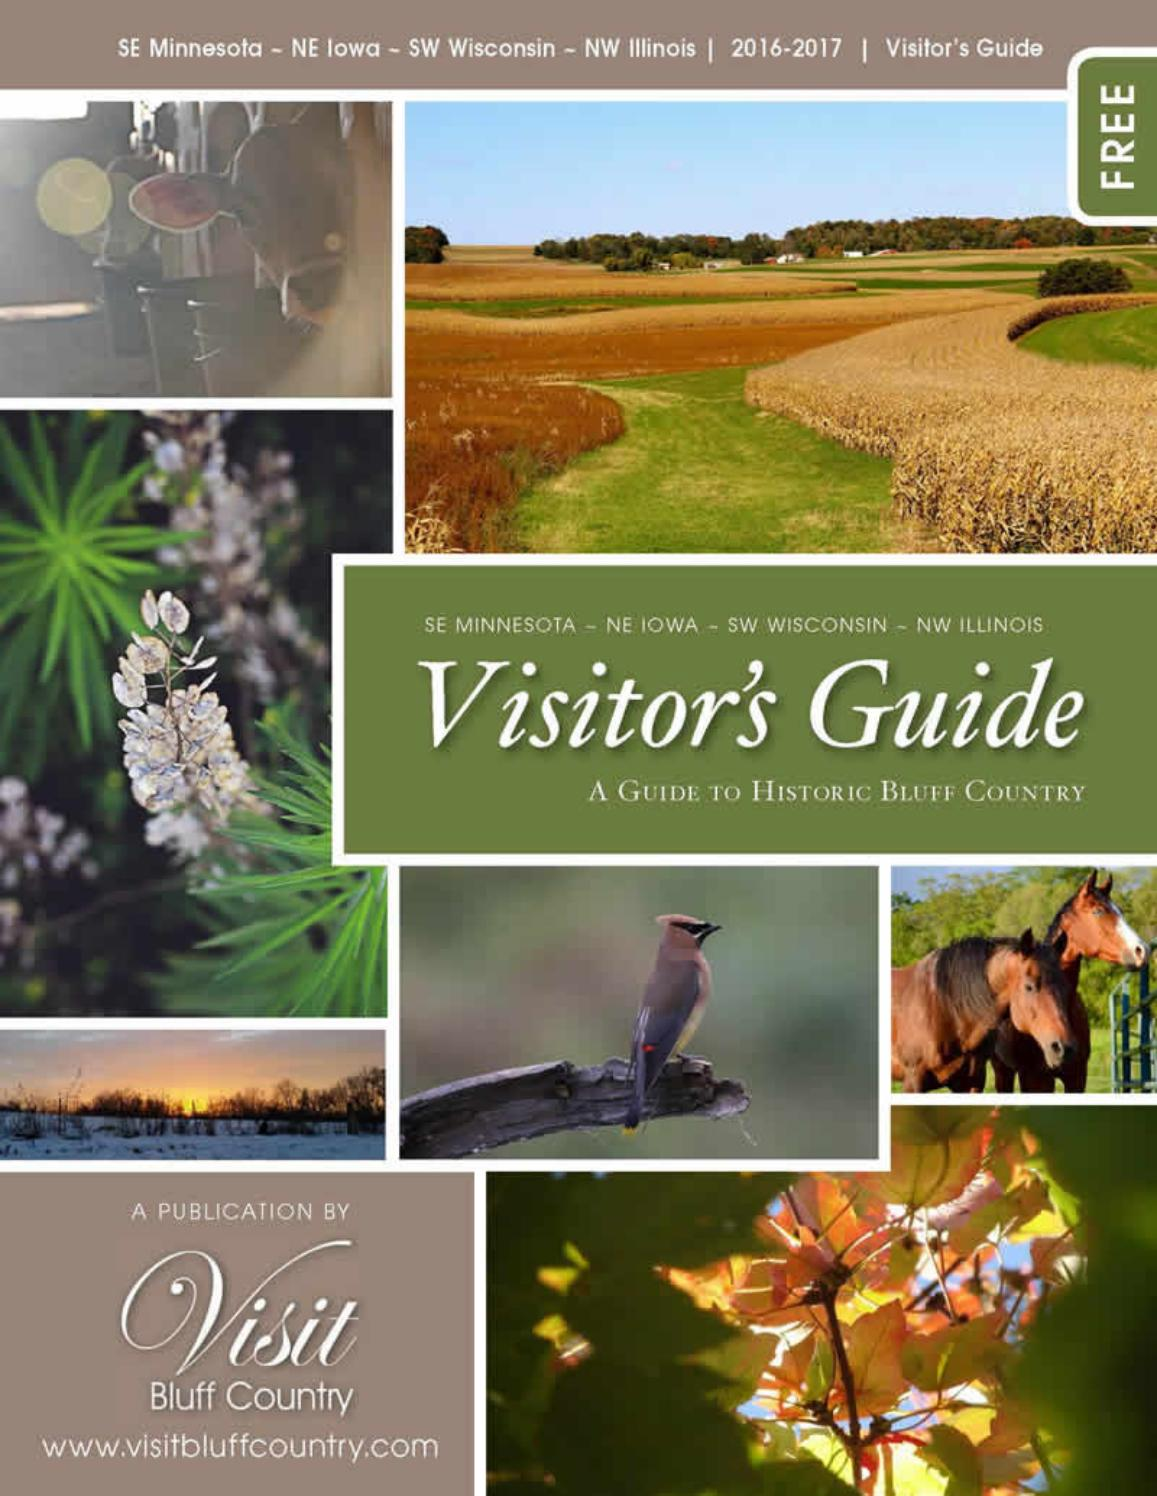 Visit Bluff Country 2016 by Visit Bluff Country - issuu